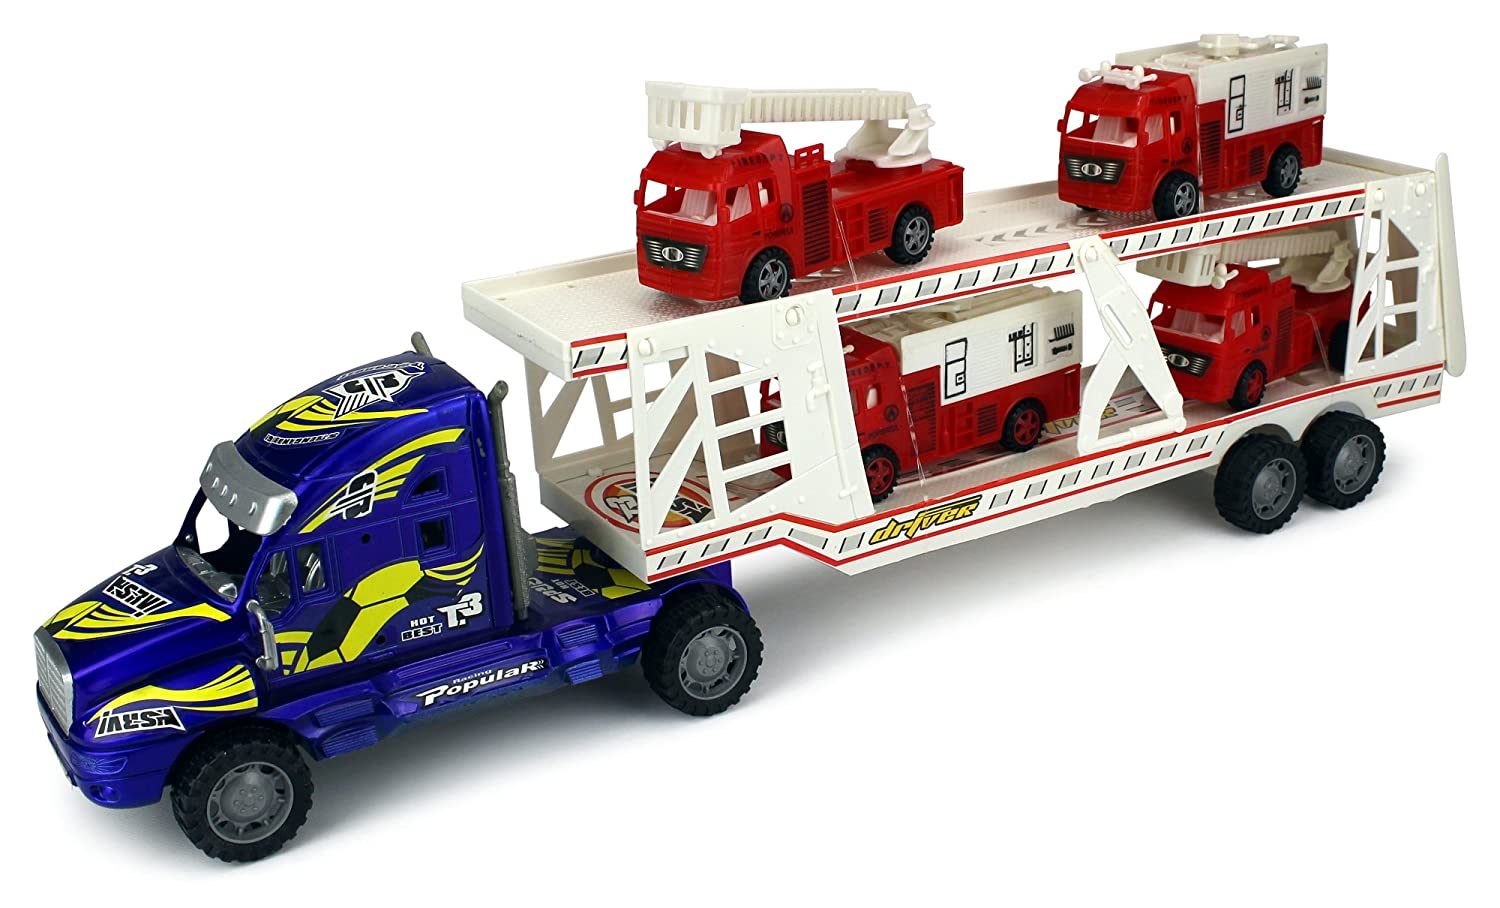 Fire Dept. Trailer Children's Kid's Friction Toy Truck Ready To Run w/ 4 Toy Fire Trucks, No Batteries Required (Colours May Vary) B01CDDWQIA